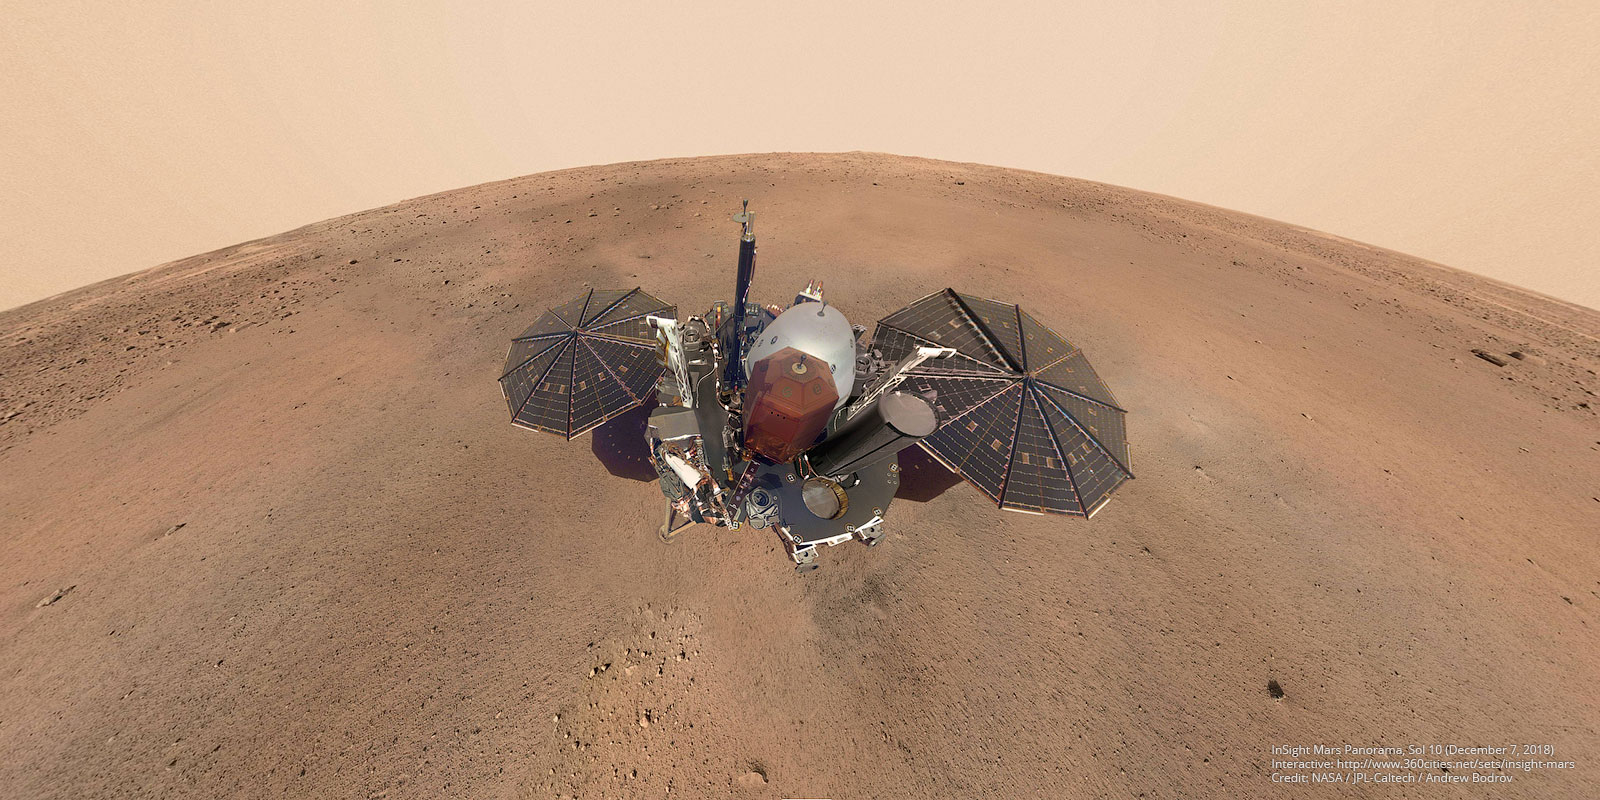 This panorama combines 10 exposures taken by the lander's Instrument Deployment Camera (IDC), located on the elbow of its robotic arm, during the Sol 10 of InSight's work on Mars (December 7, 2018). Additionally 86 images of landscape was taken on Sol 14 (December 11, 2018). Some parts of the panorama is retouched. Image Credit: NASA/JPL-Caltech/Andrew Bodrov